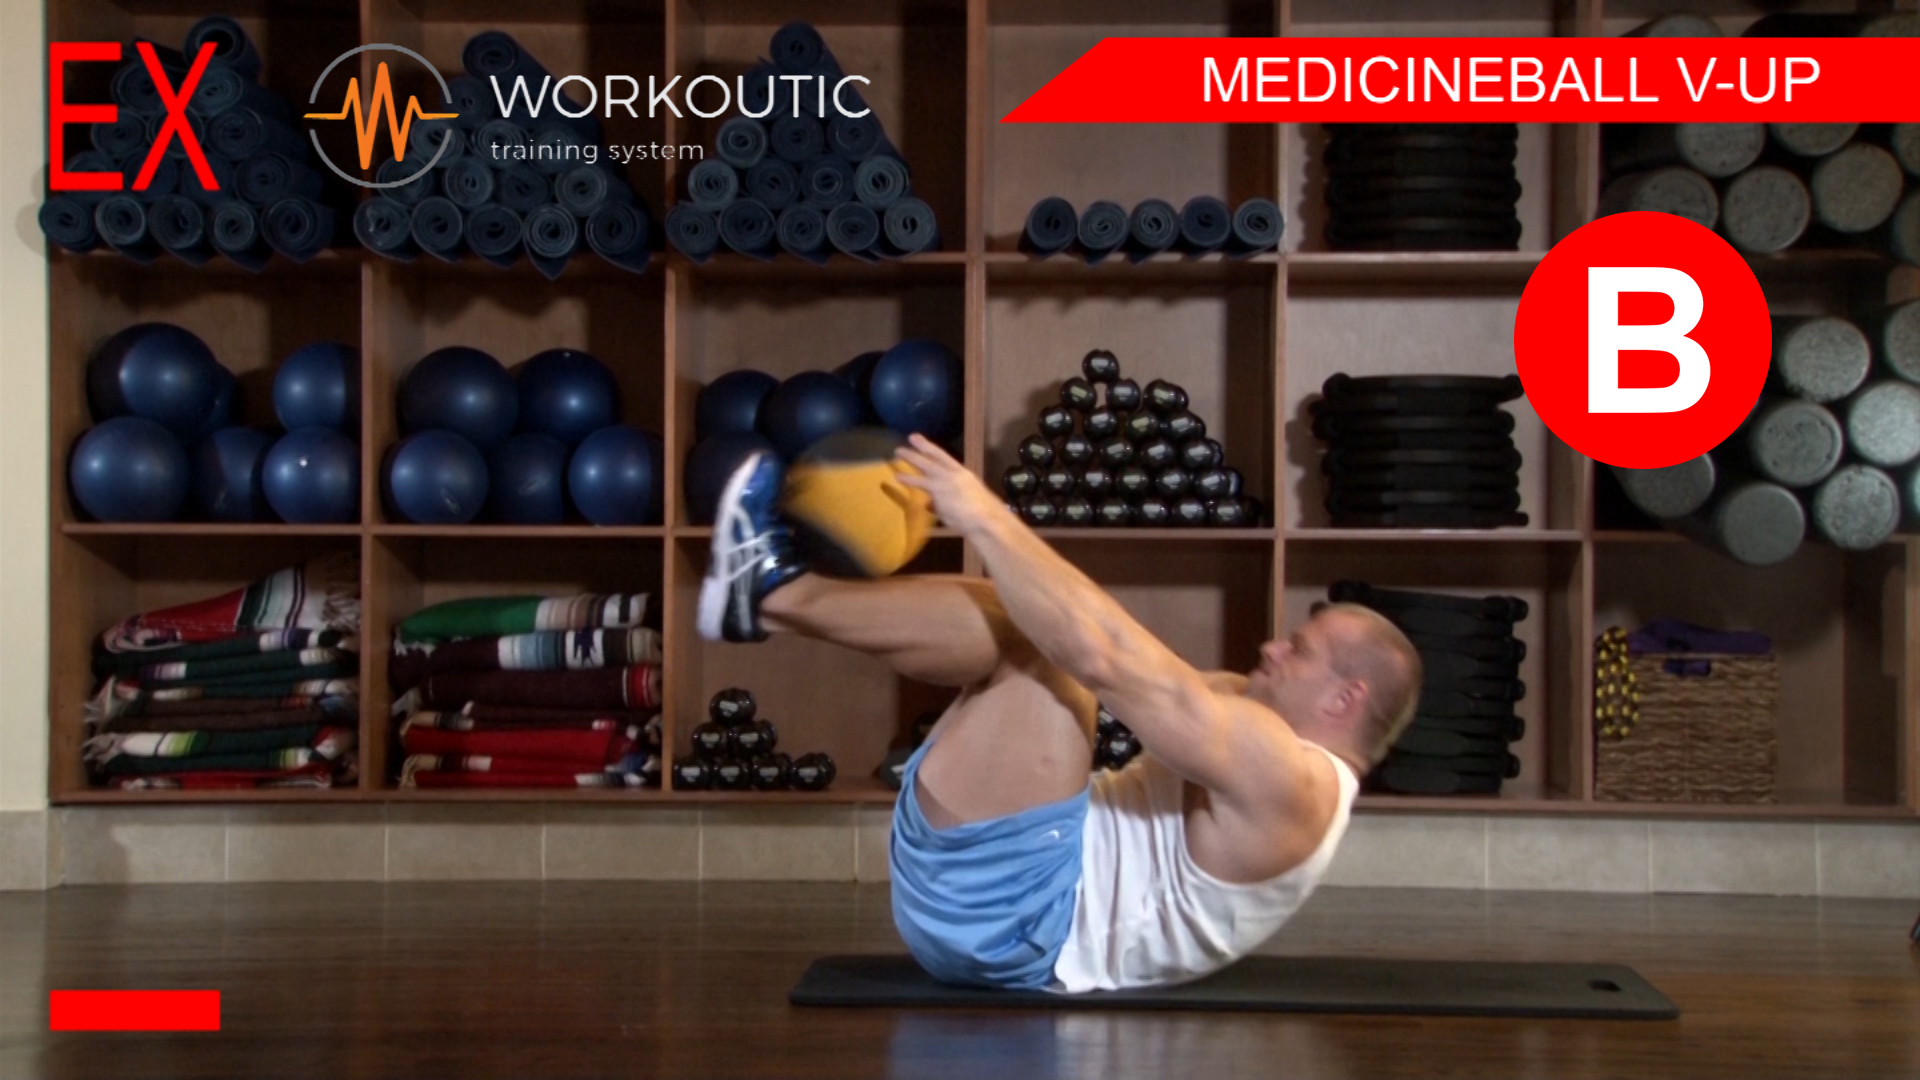 Abs Exercises - Workutic - 6 pack special - Medicineball V-Up Exhale